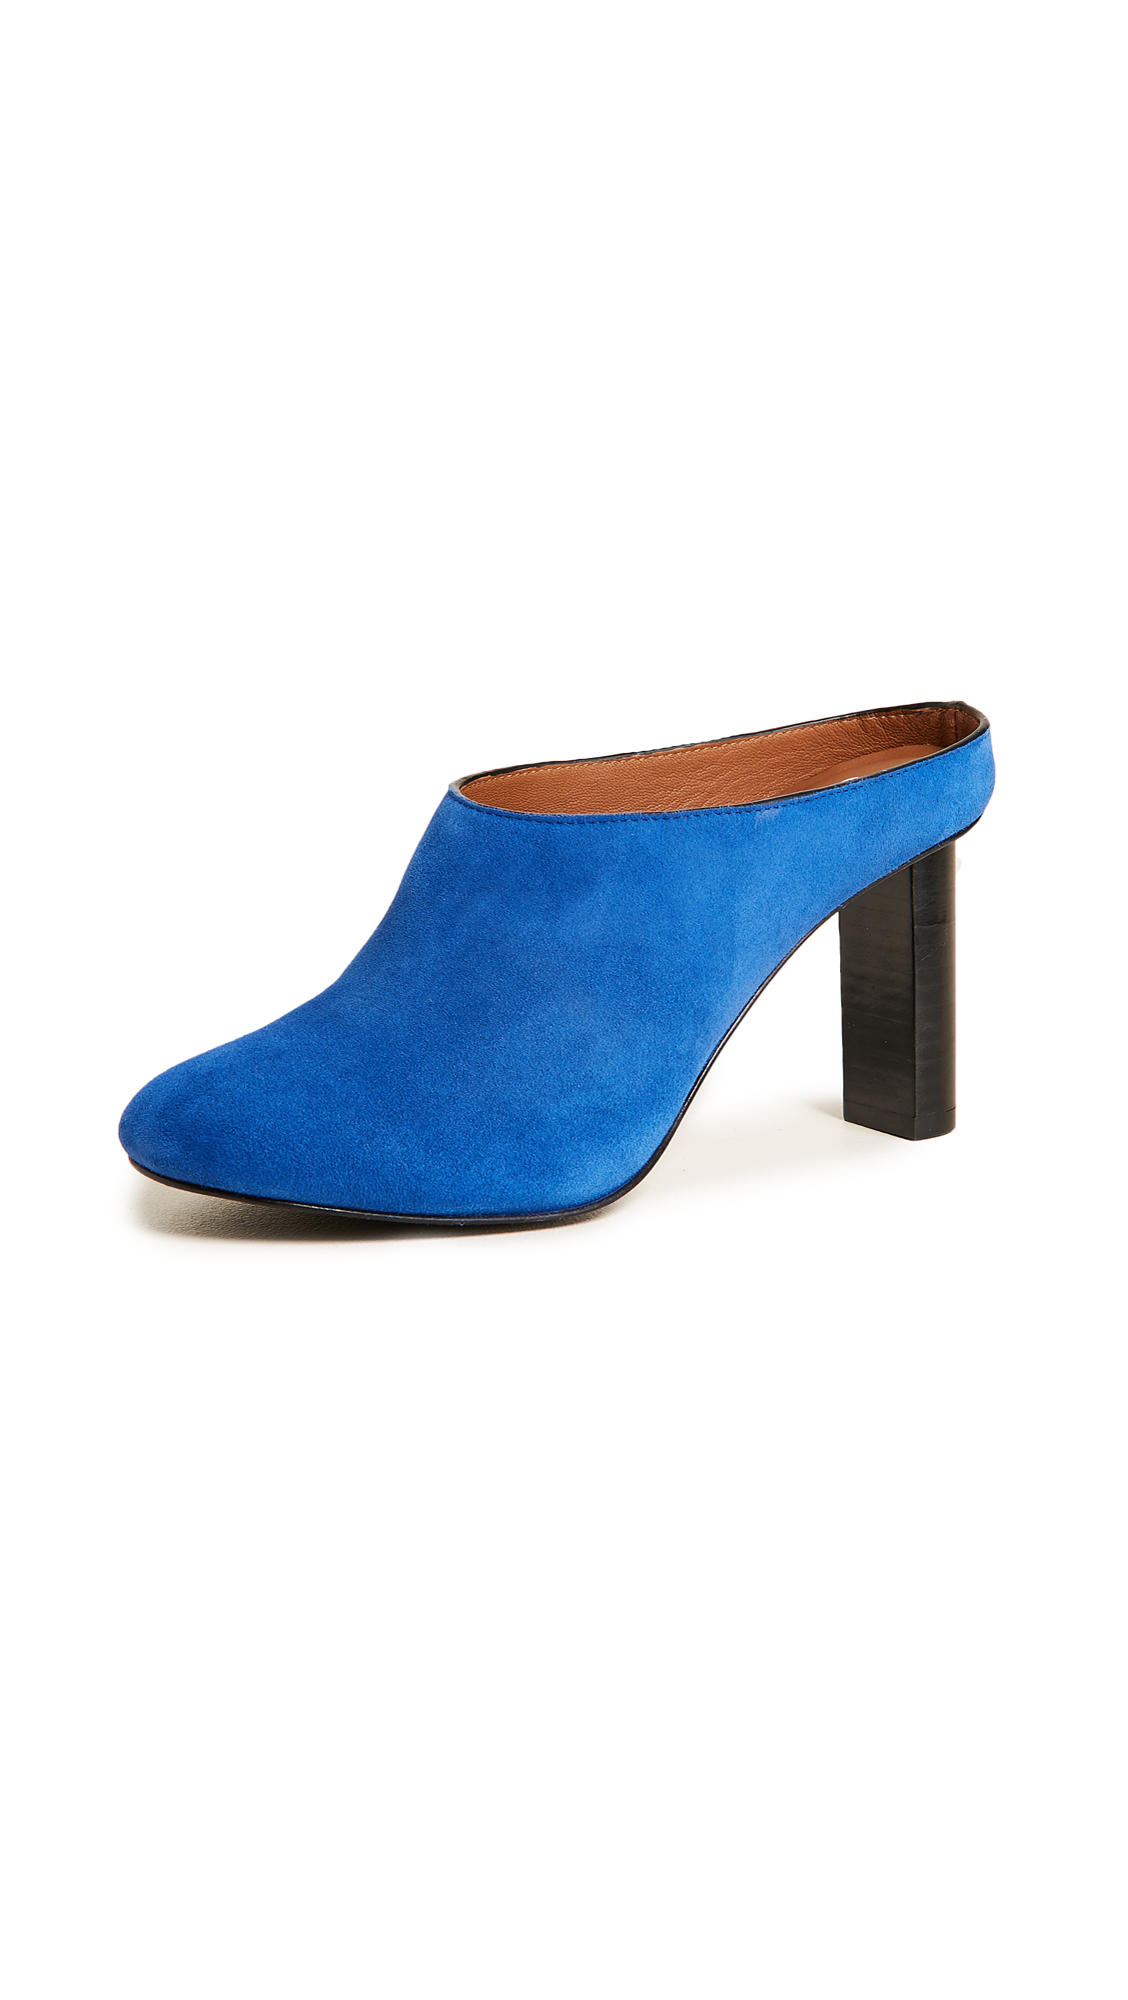 Joseph High Bardot Mules - Bright Blue